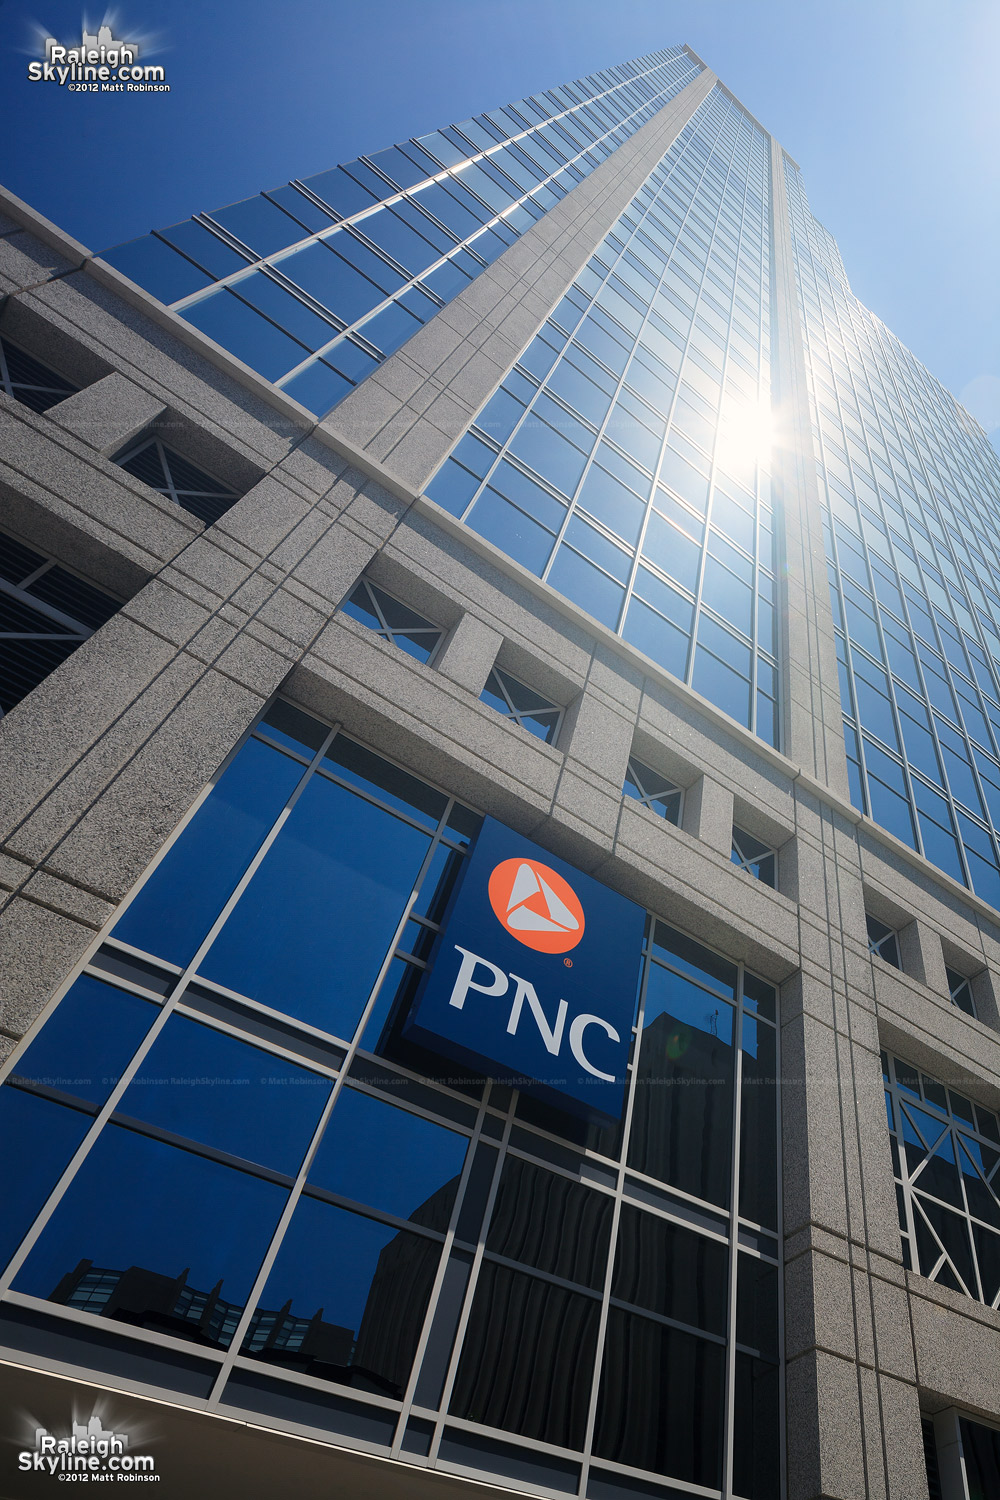 PNC Plaza in Raleigh